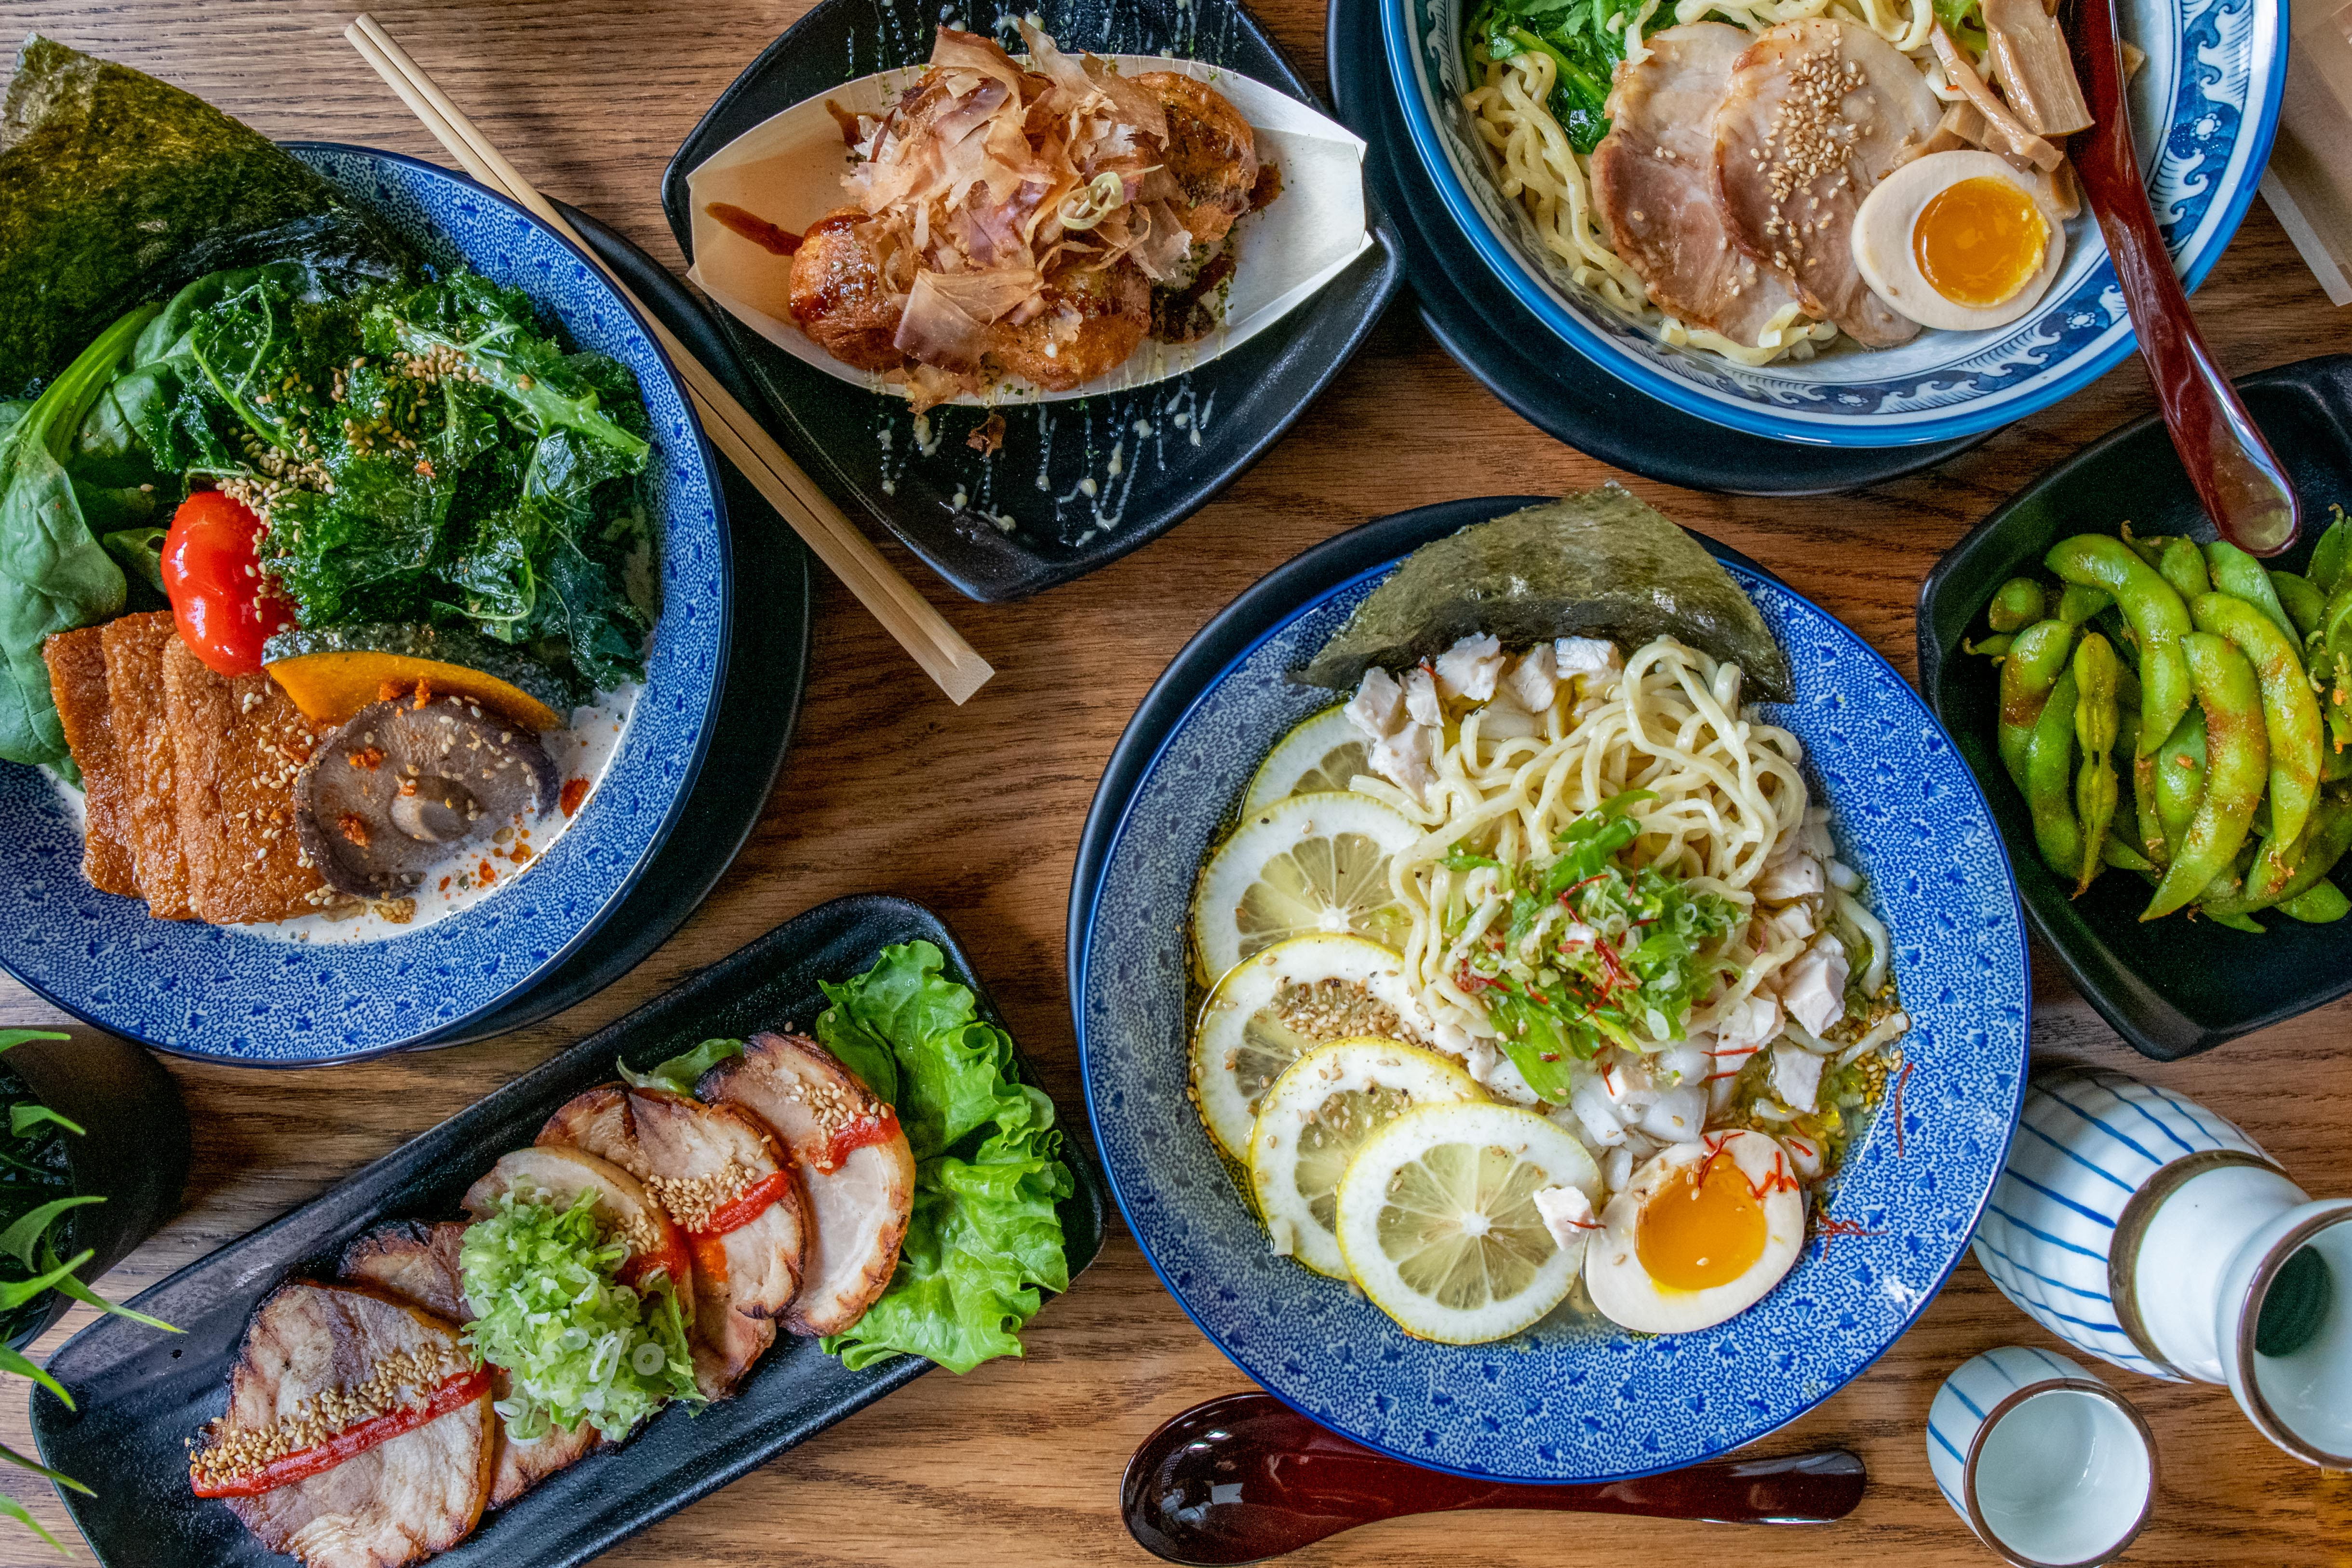 A Seriously Exciting Ramen Restaurant Debuts This Week on Greenville Avenue